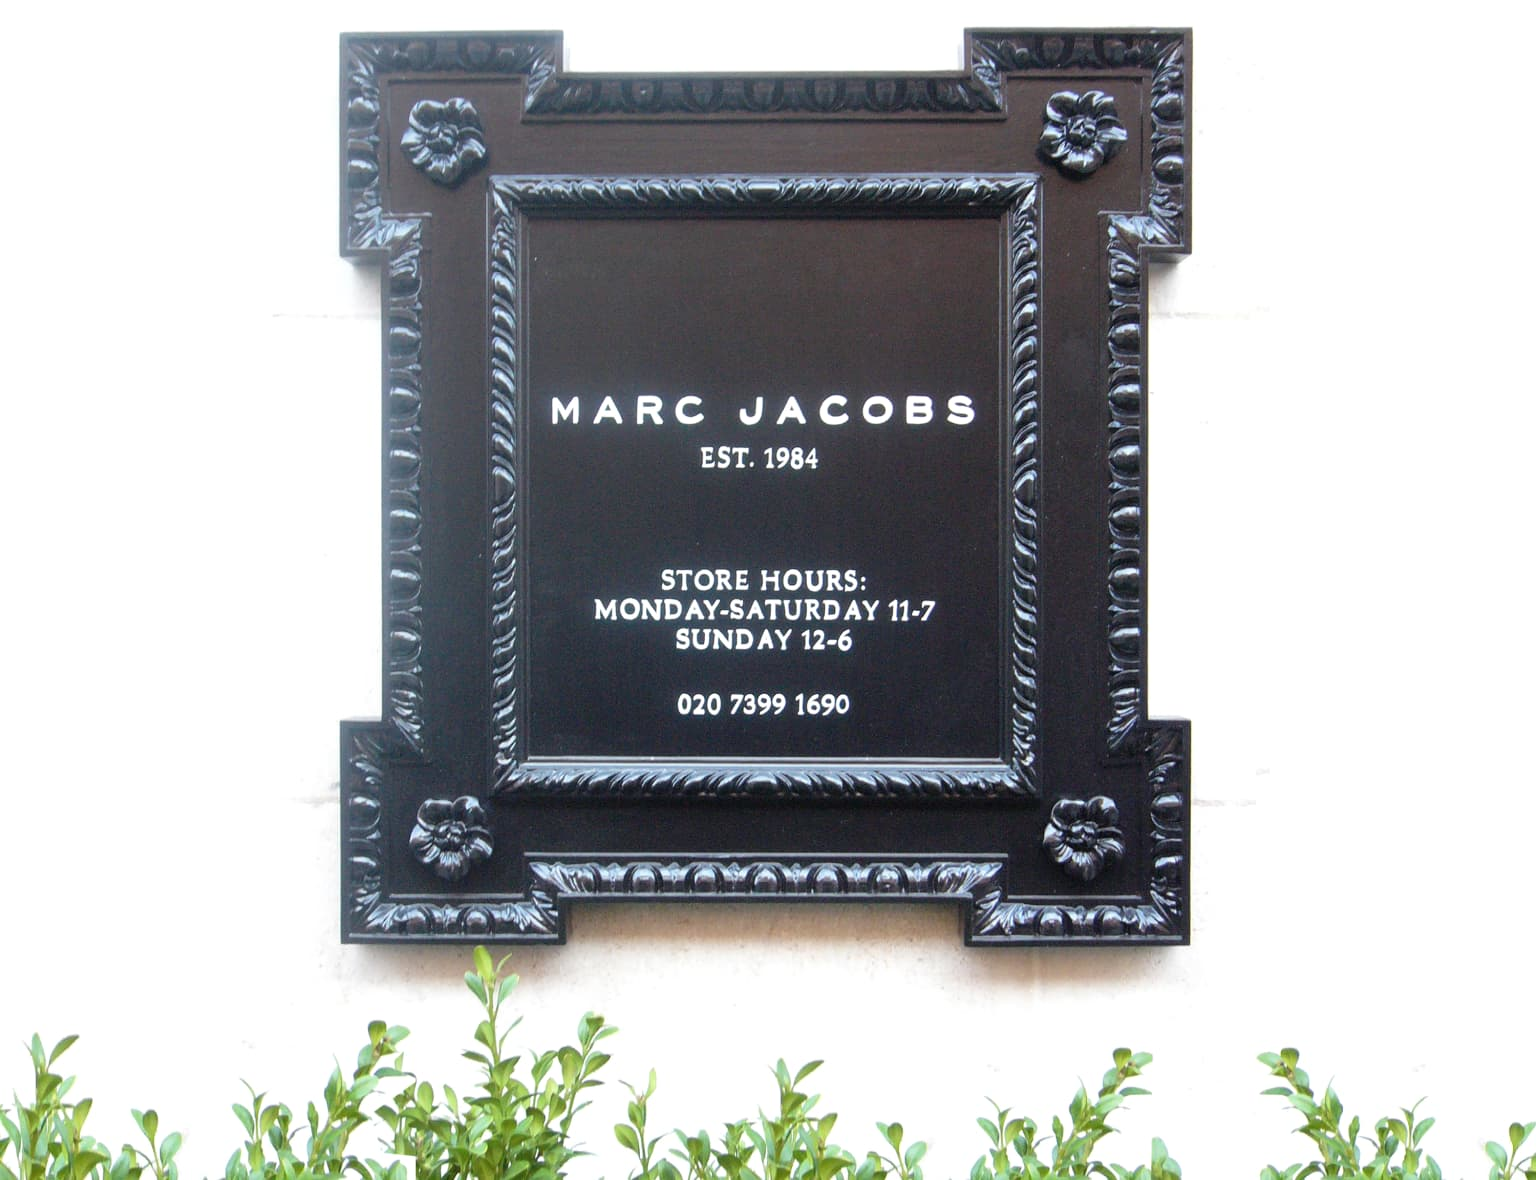 Marc Jacobs - NYC Showroom + London Flagship